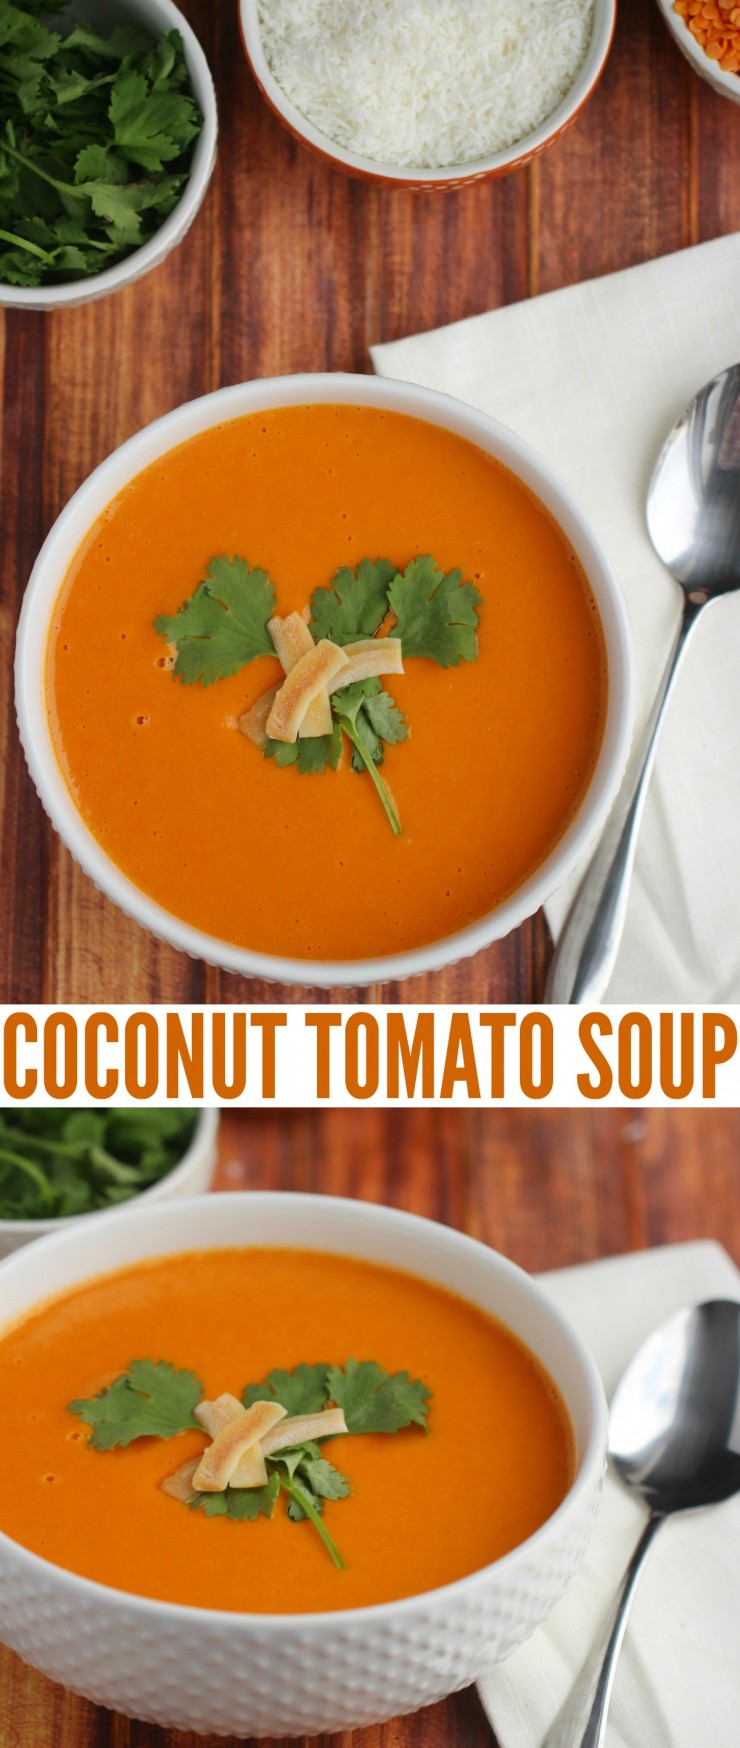 Coconut-Tomato-Soup 5